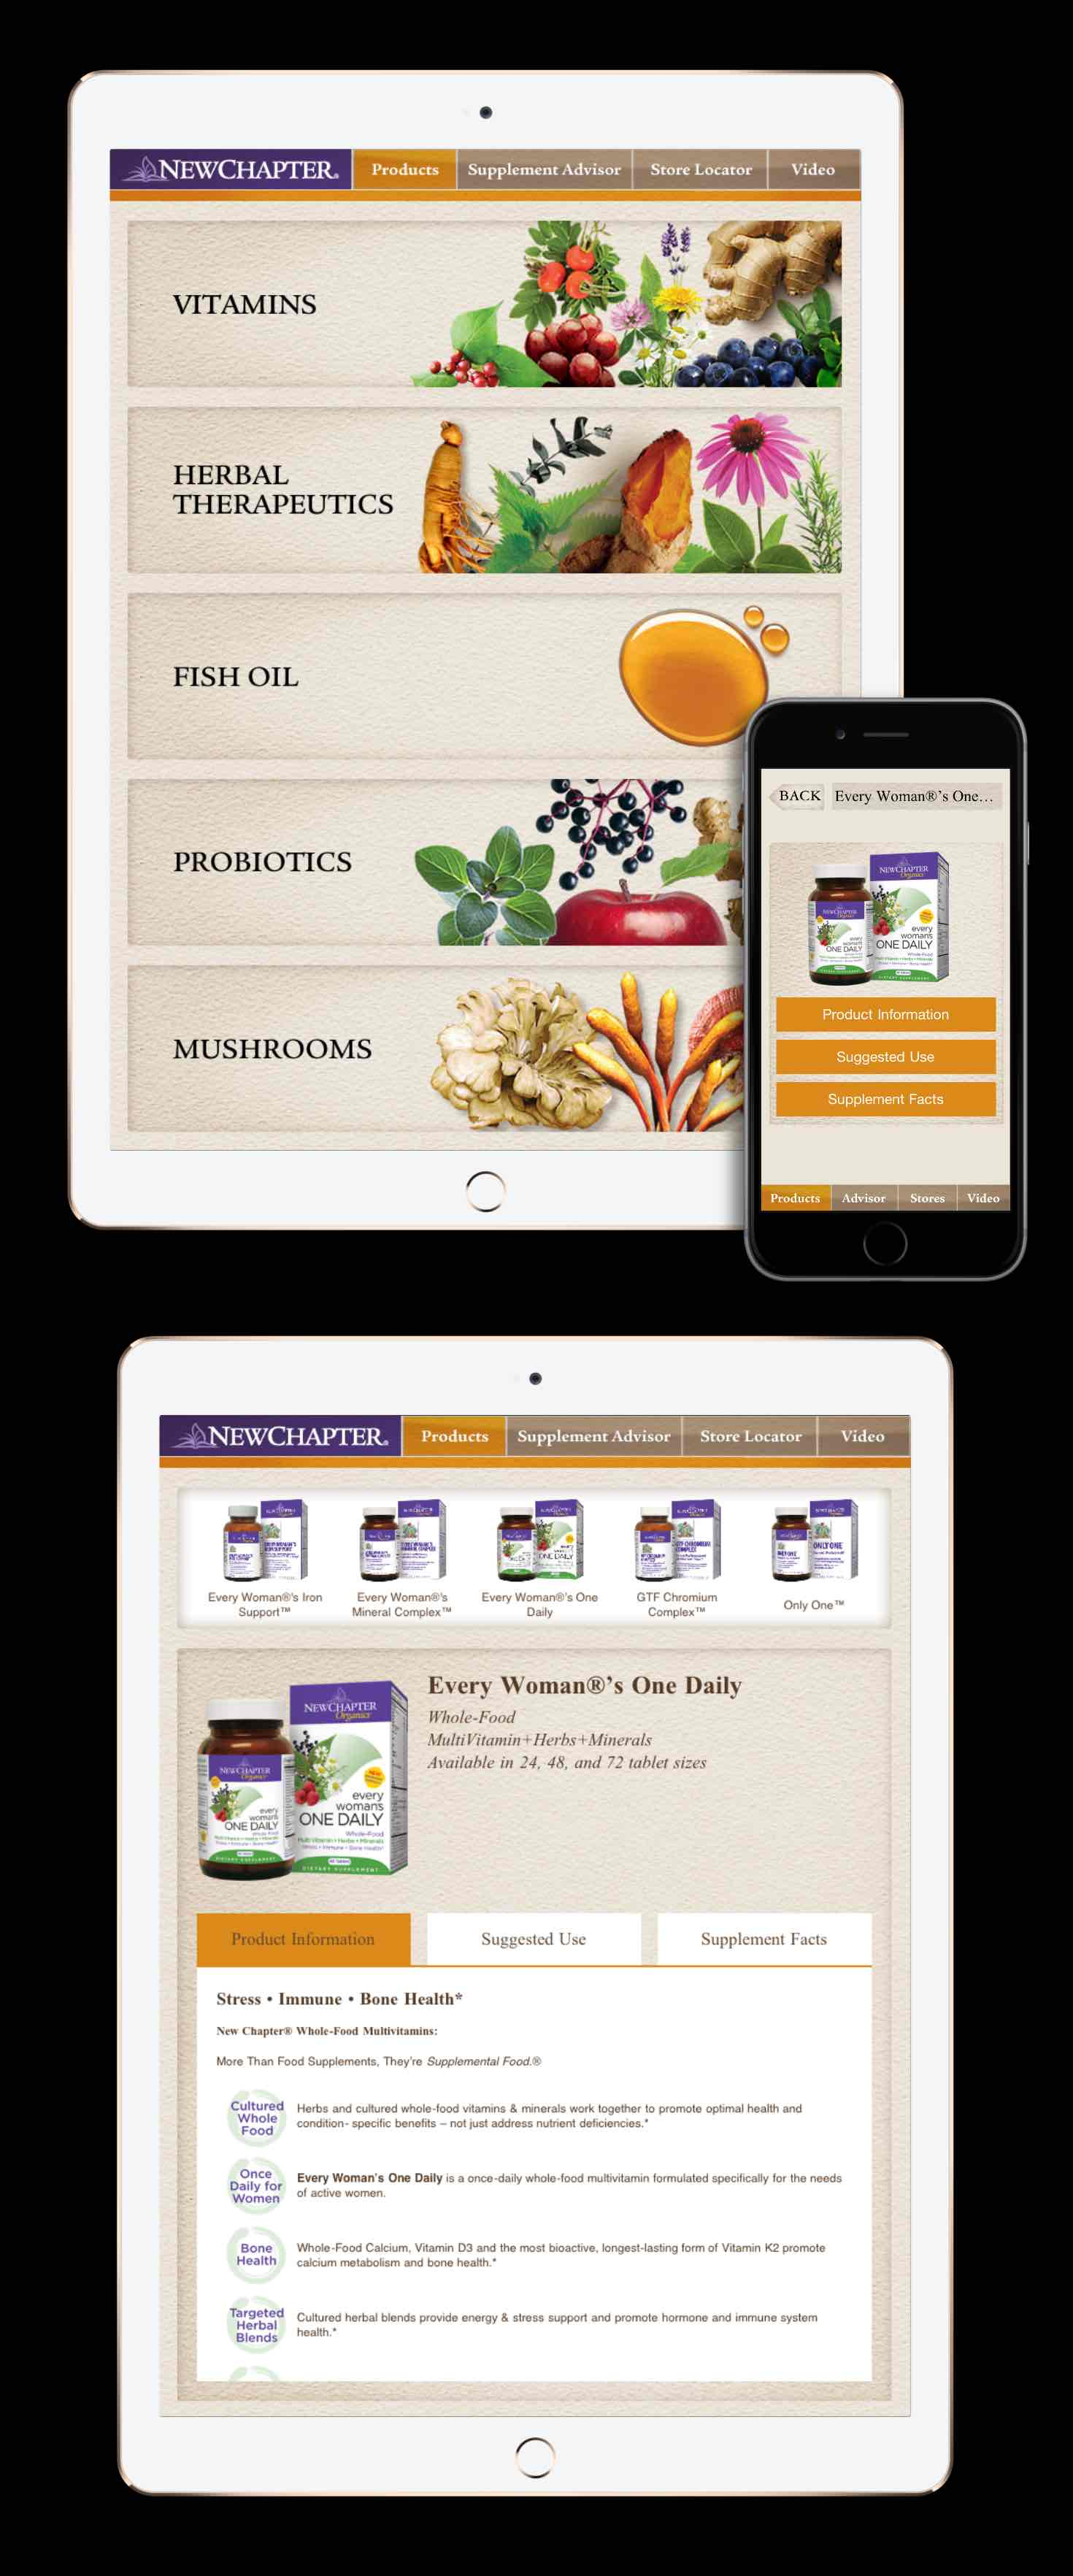 New Chapter app showing products and supplement facts